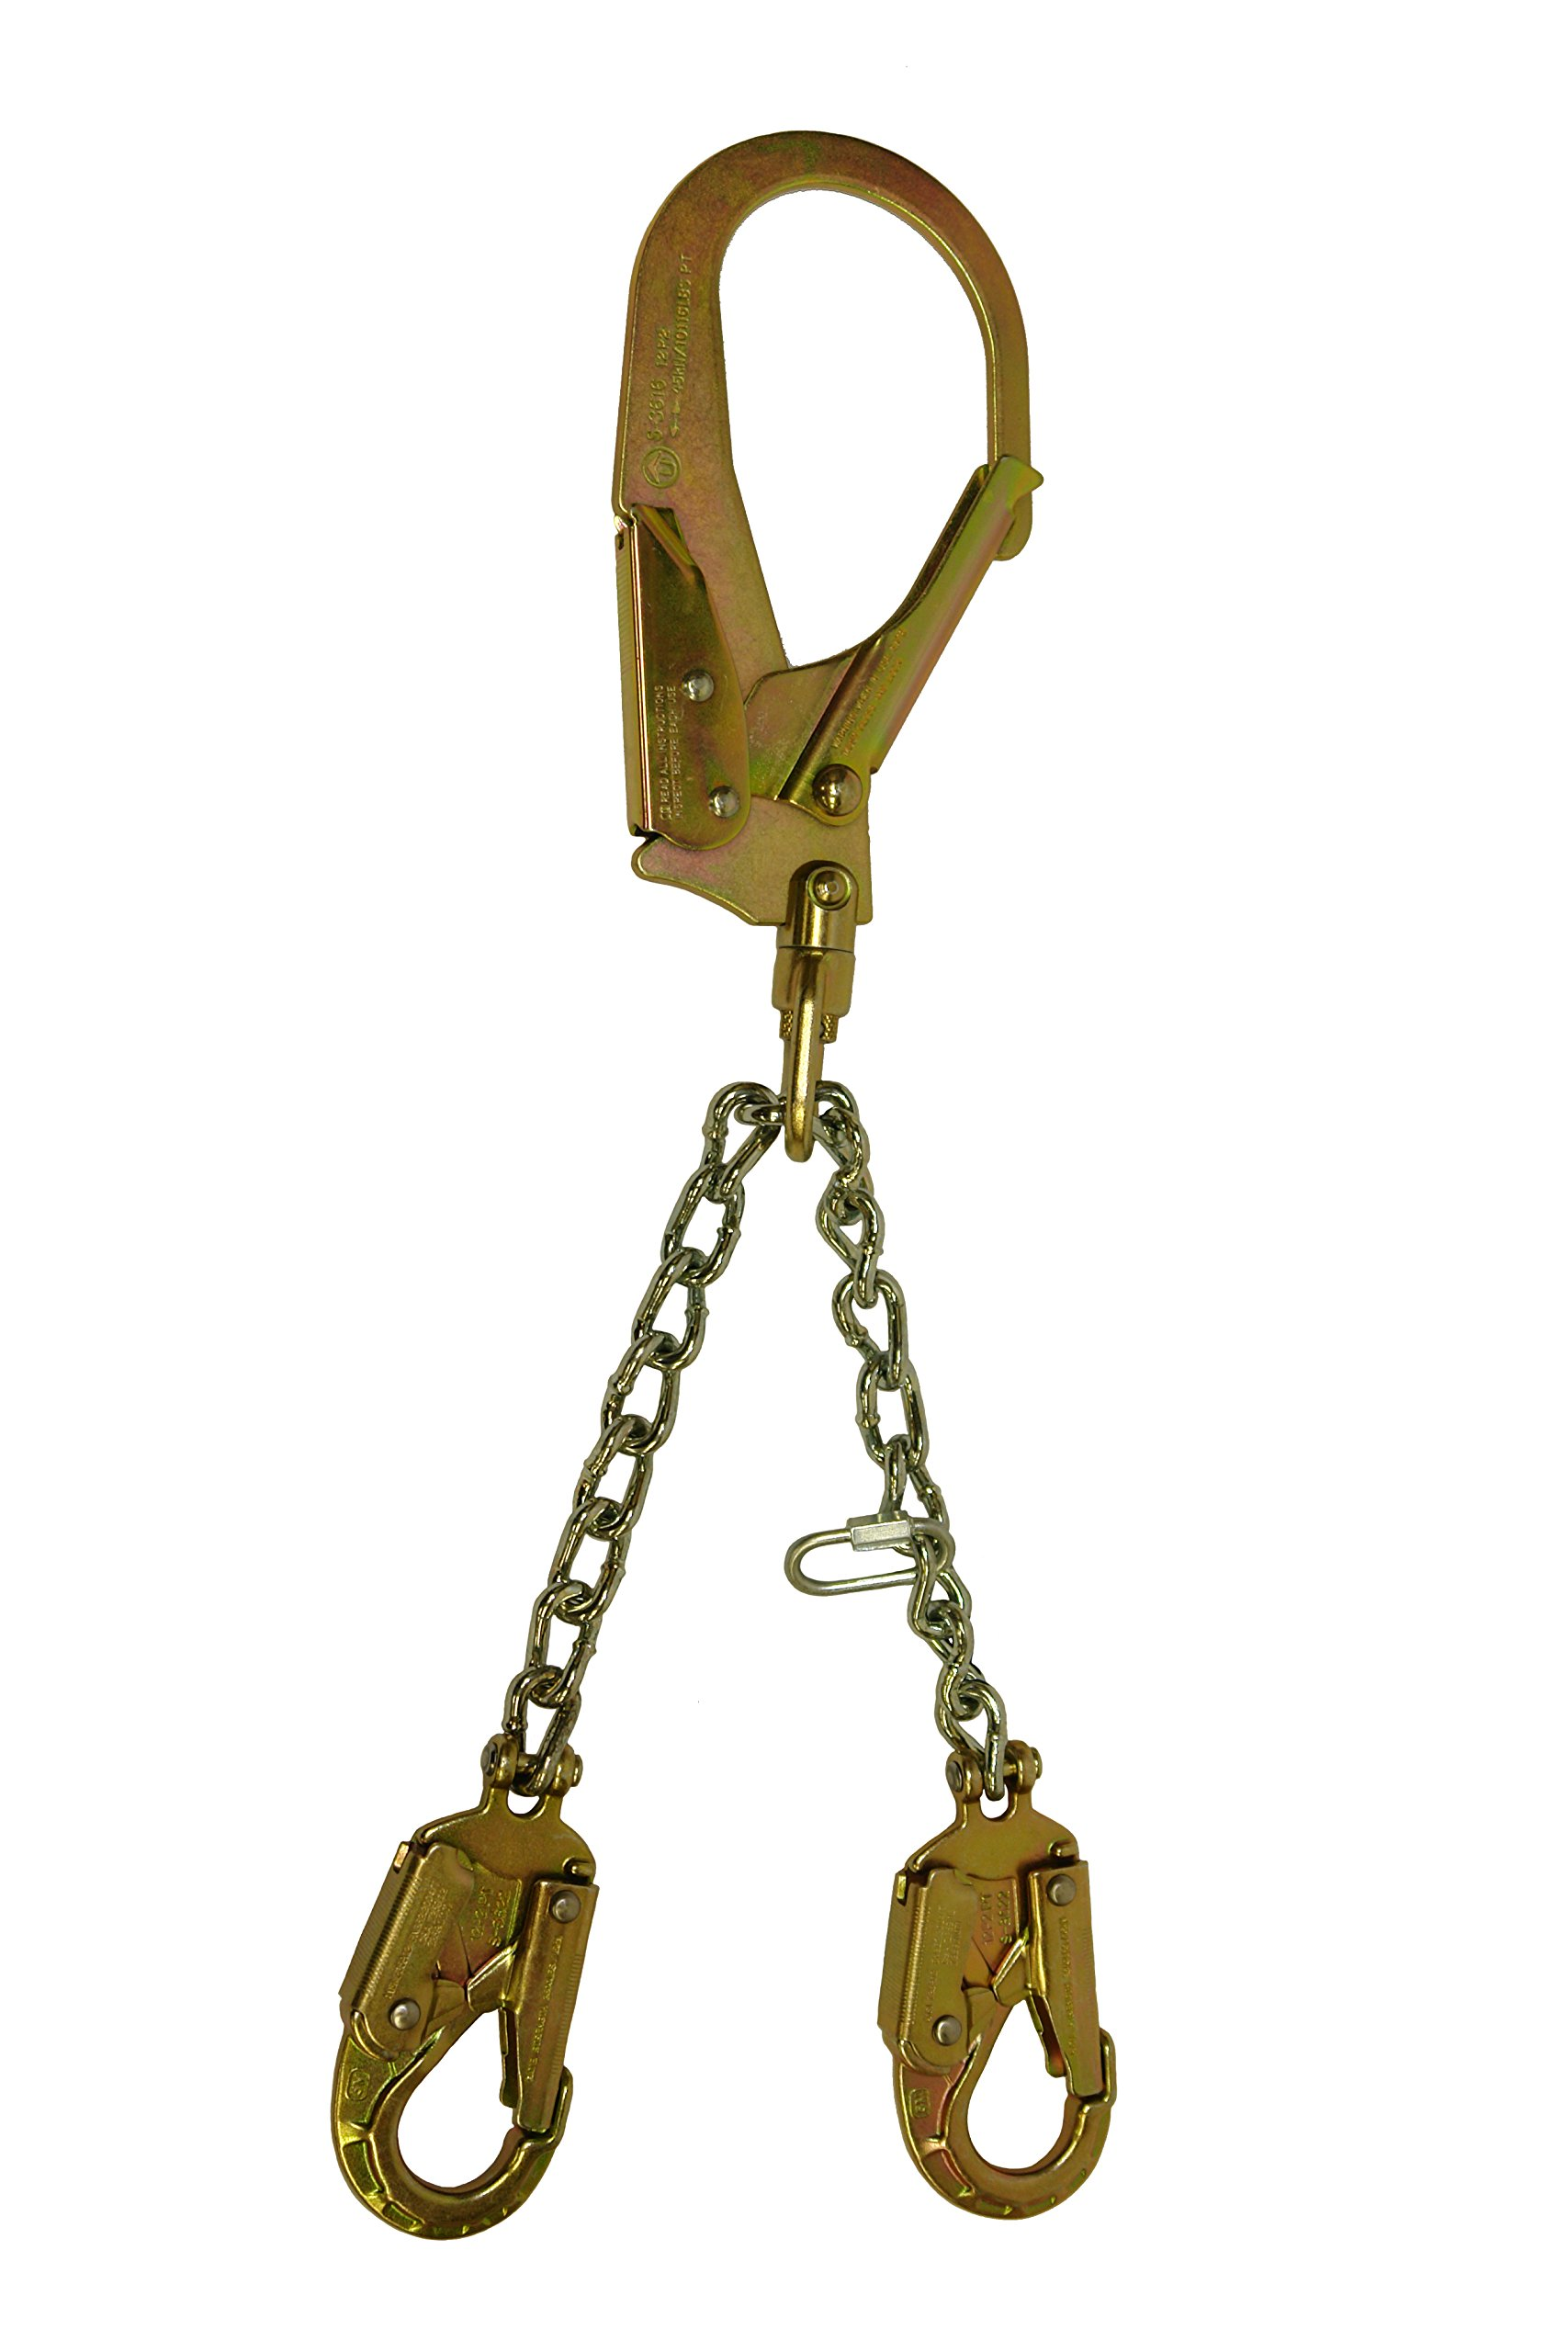 Elk River 13425 Adjuster Rebar Chain Assembly with Snaphooks and Swivel Rebar Hook, 25-1/2'' by Elk River (Image #1)